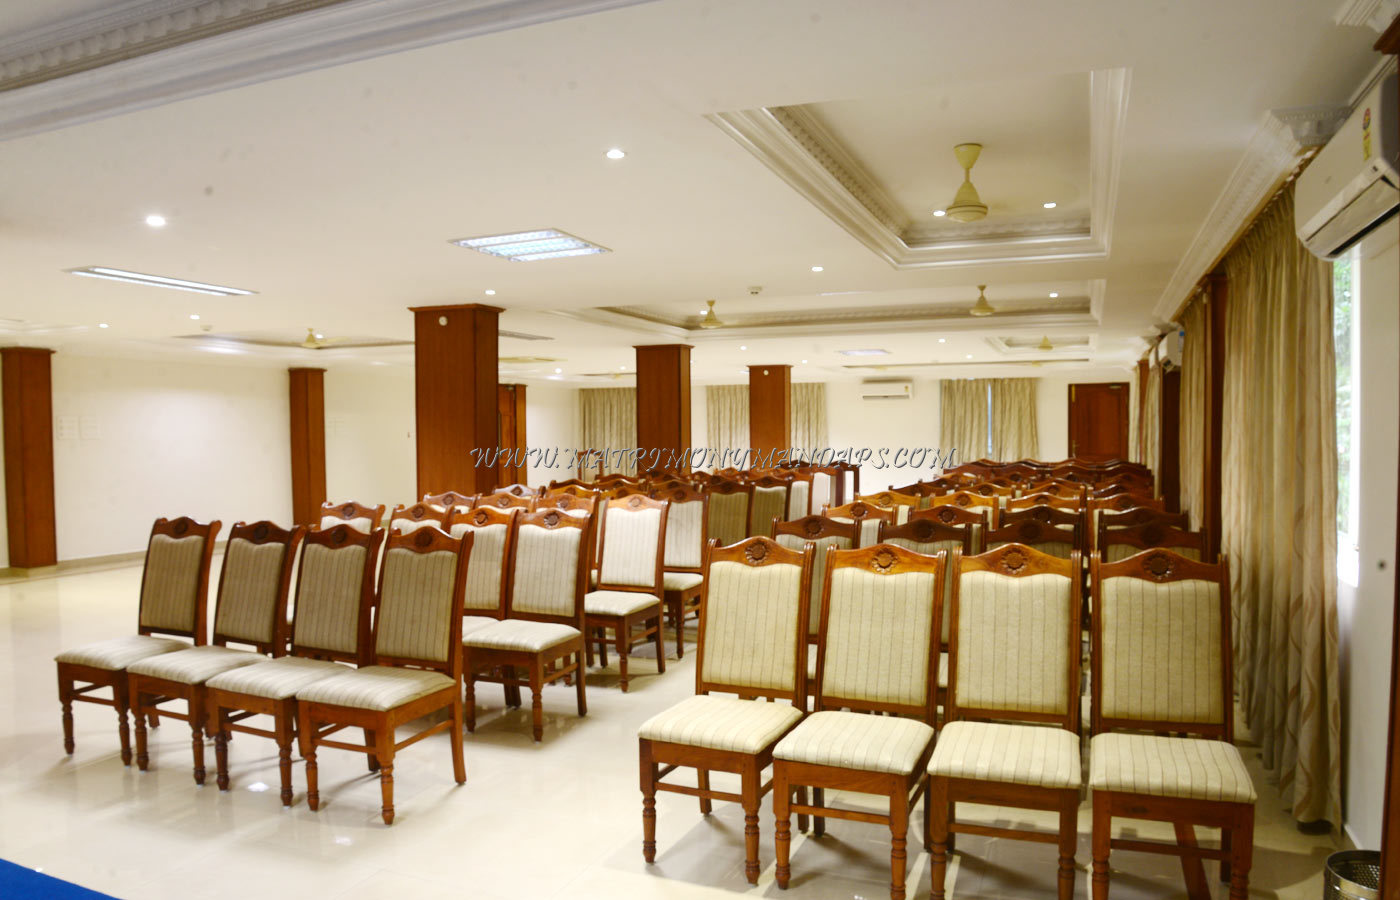 Find the availability of the Hotel Asliyya Grande Zignature (A/C) in Attingal, Trivandrum and avail special offers